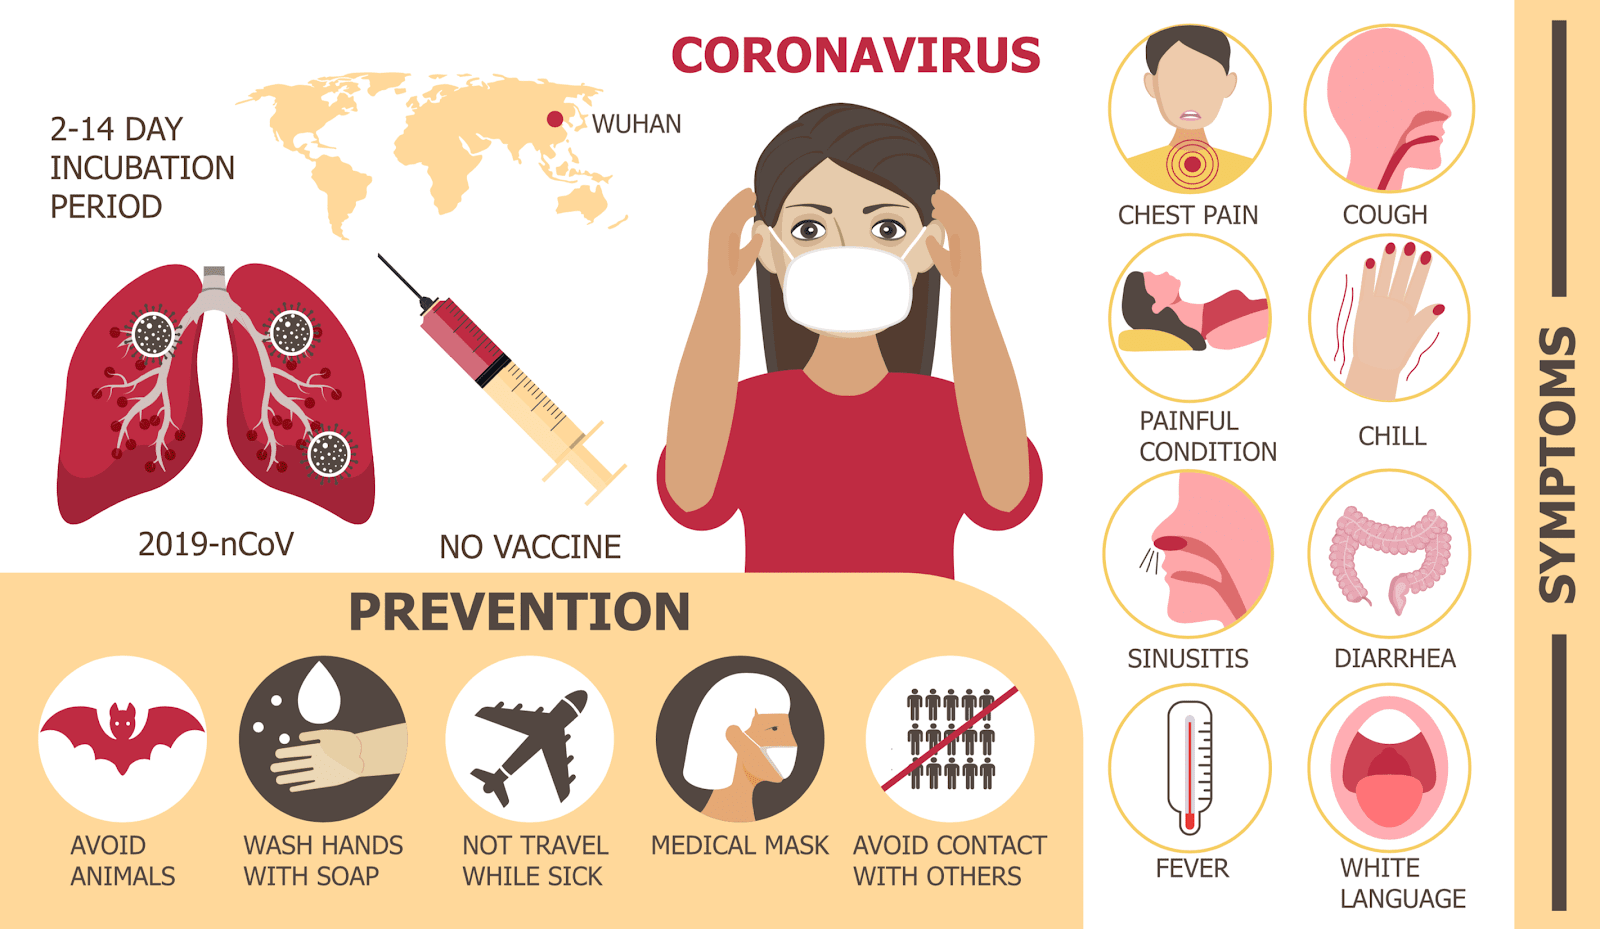 Infographic showing how to prevent the Coronavirus